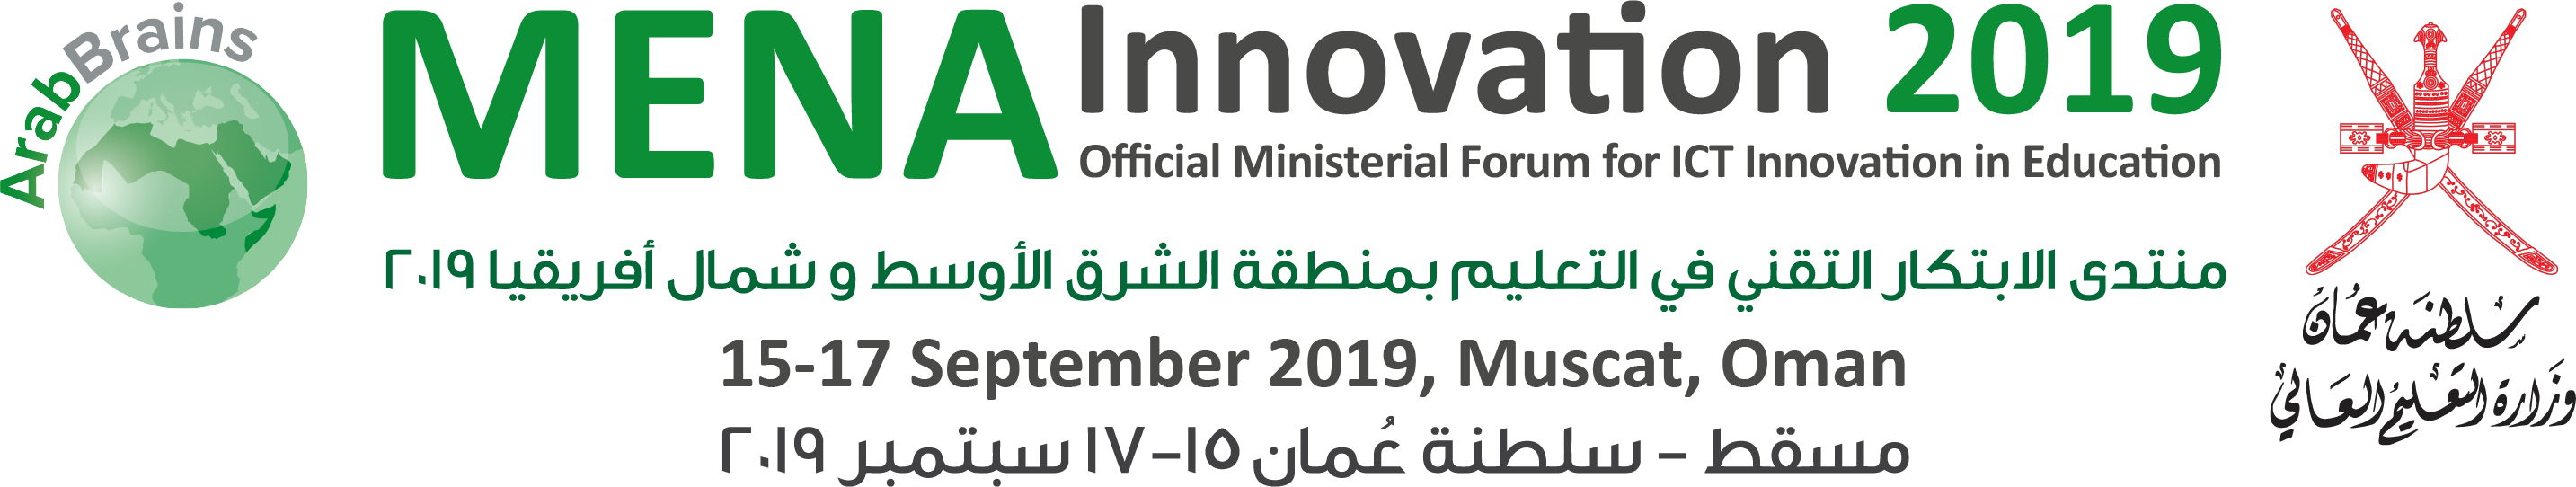 MENA Innovation 2019 - Official ICT Innovation in Education Forum